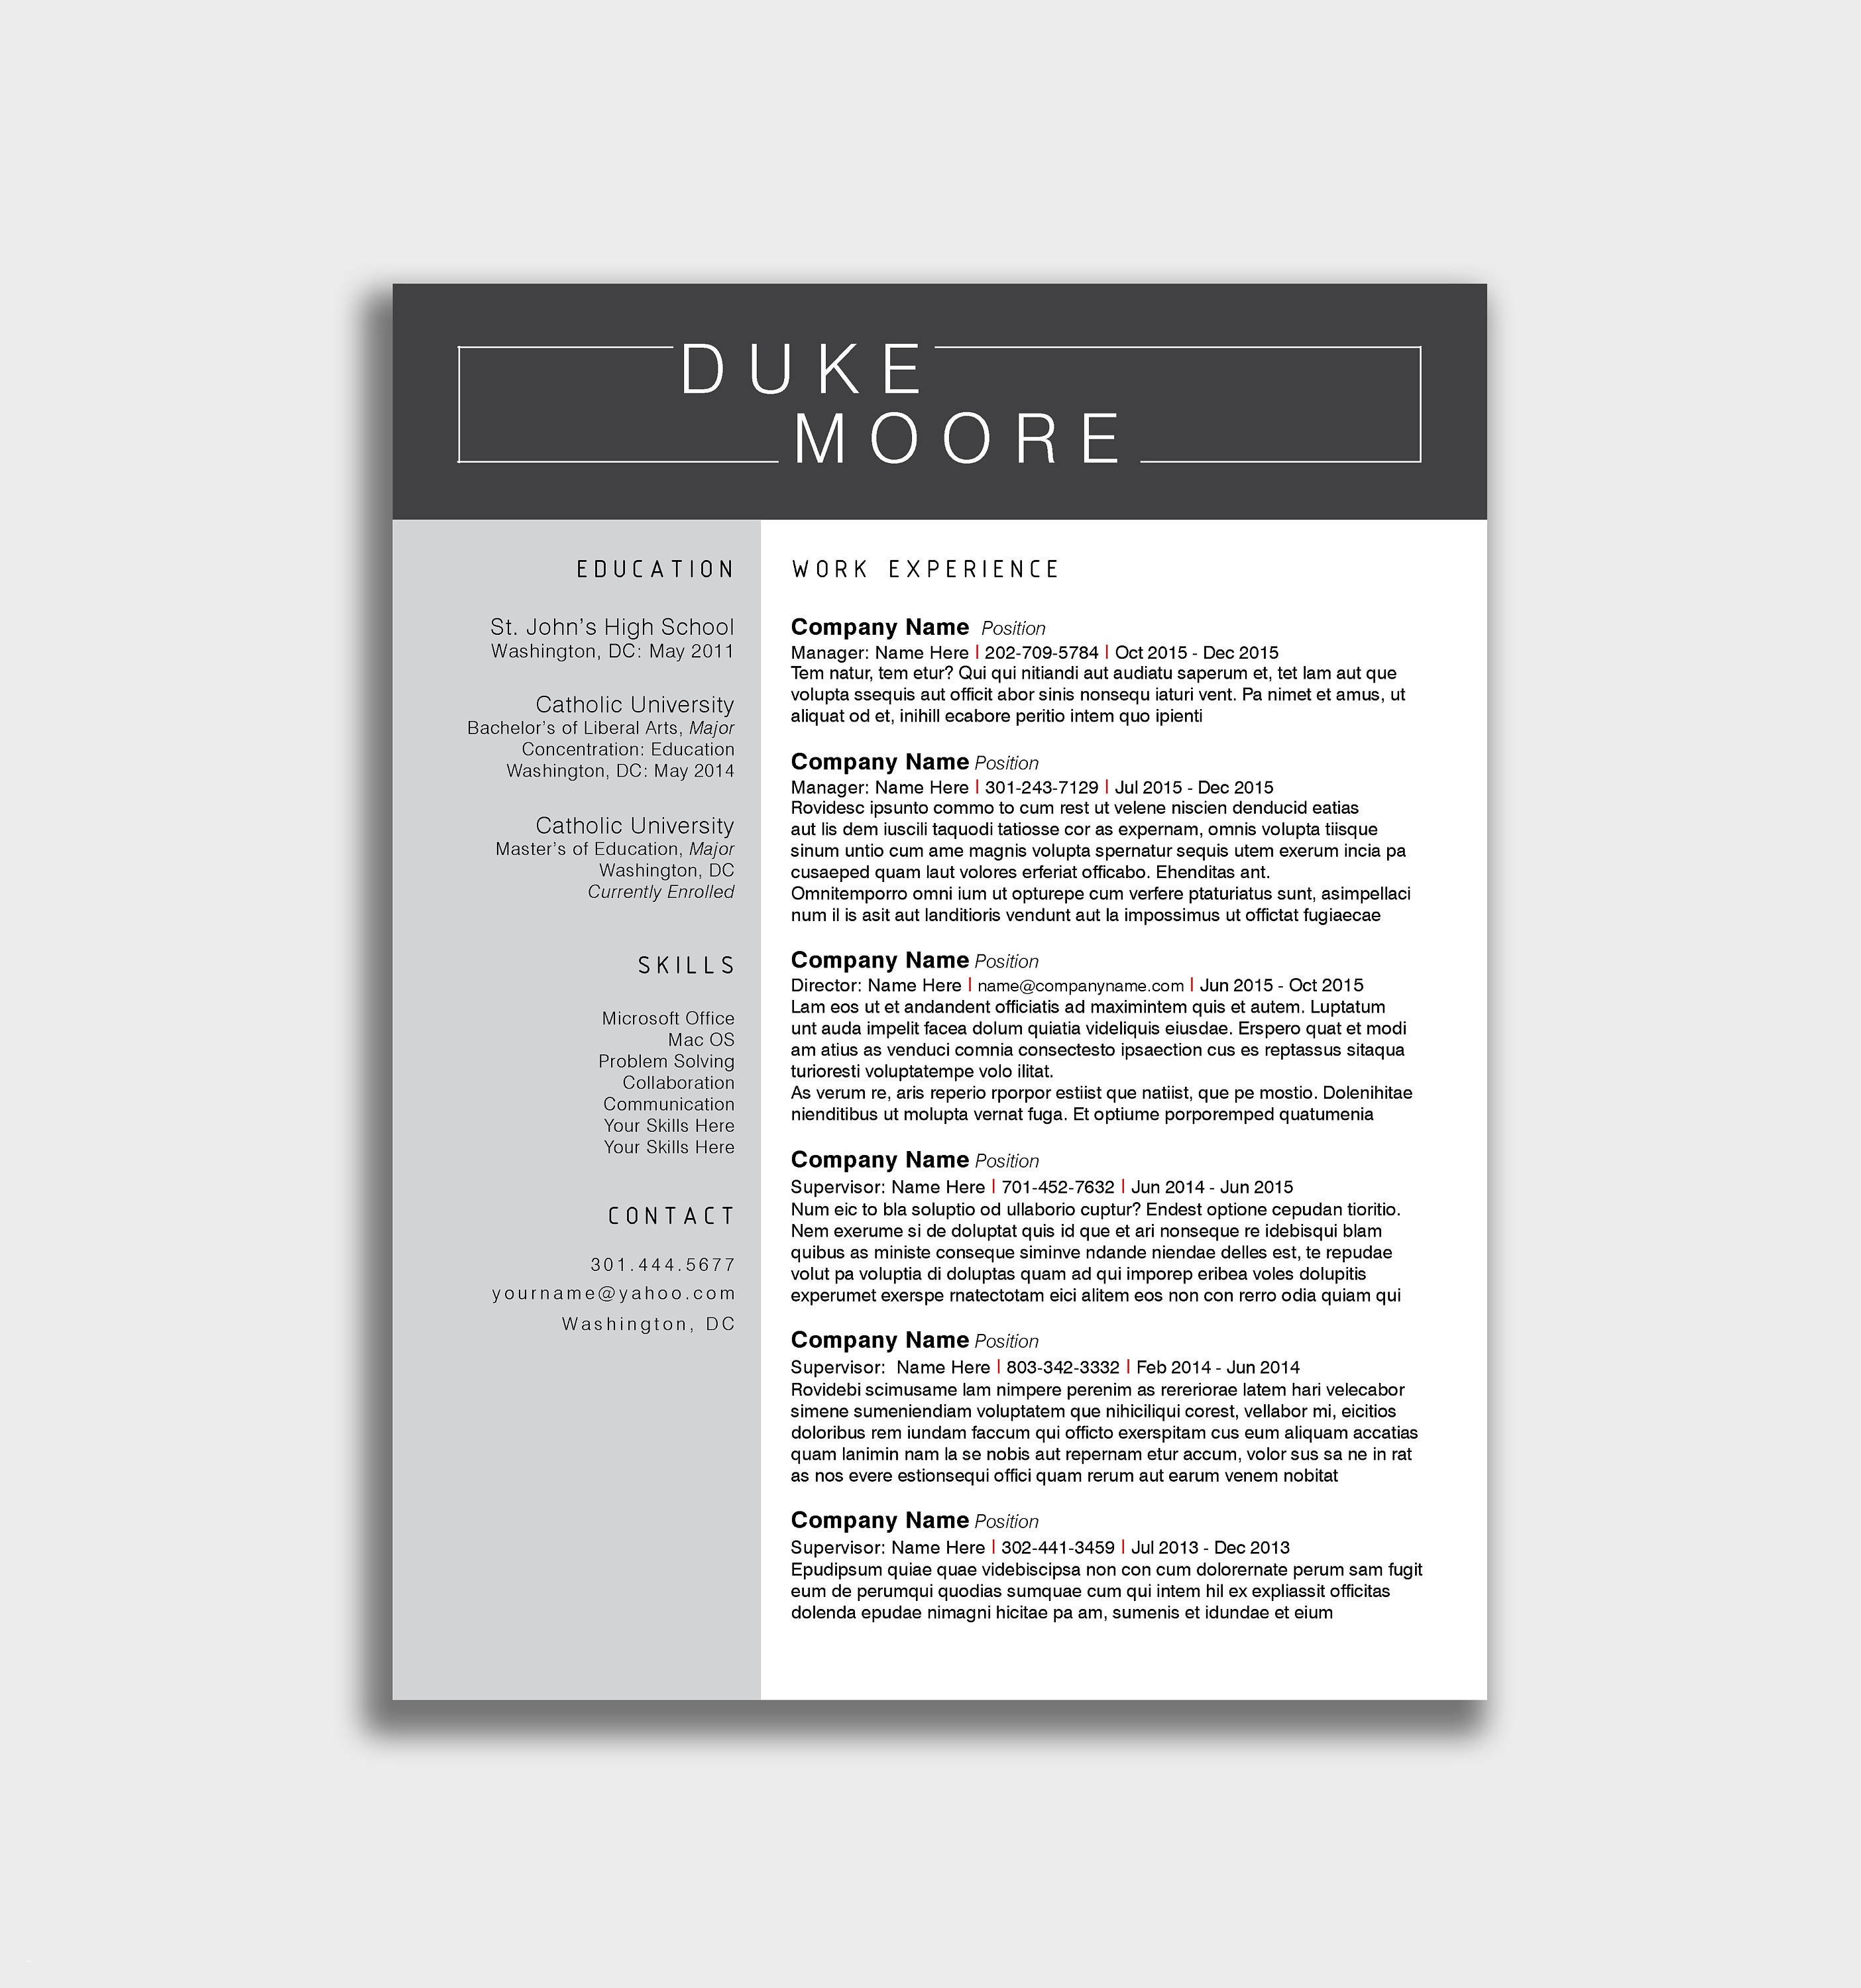 Ut Austin Mccombs Resume Template - 52 Loveable Resume Templates for College Students Occupylondonsos